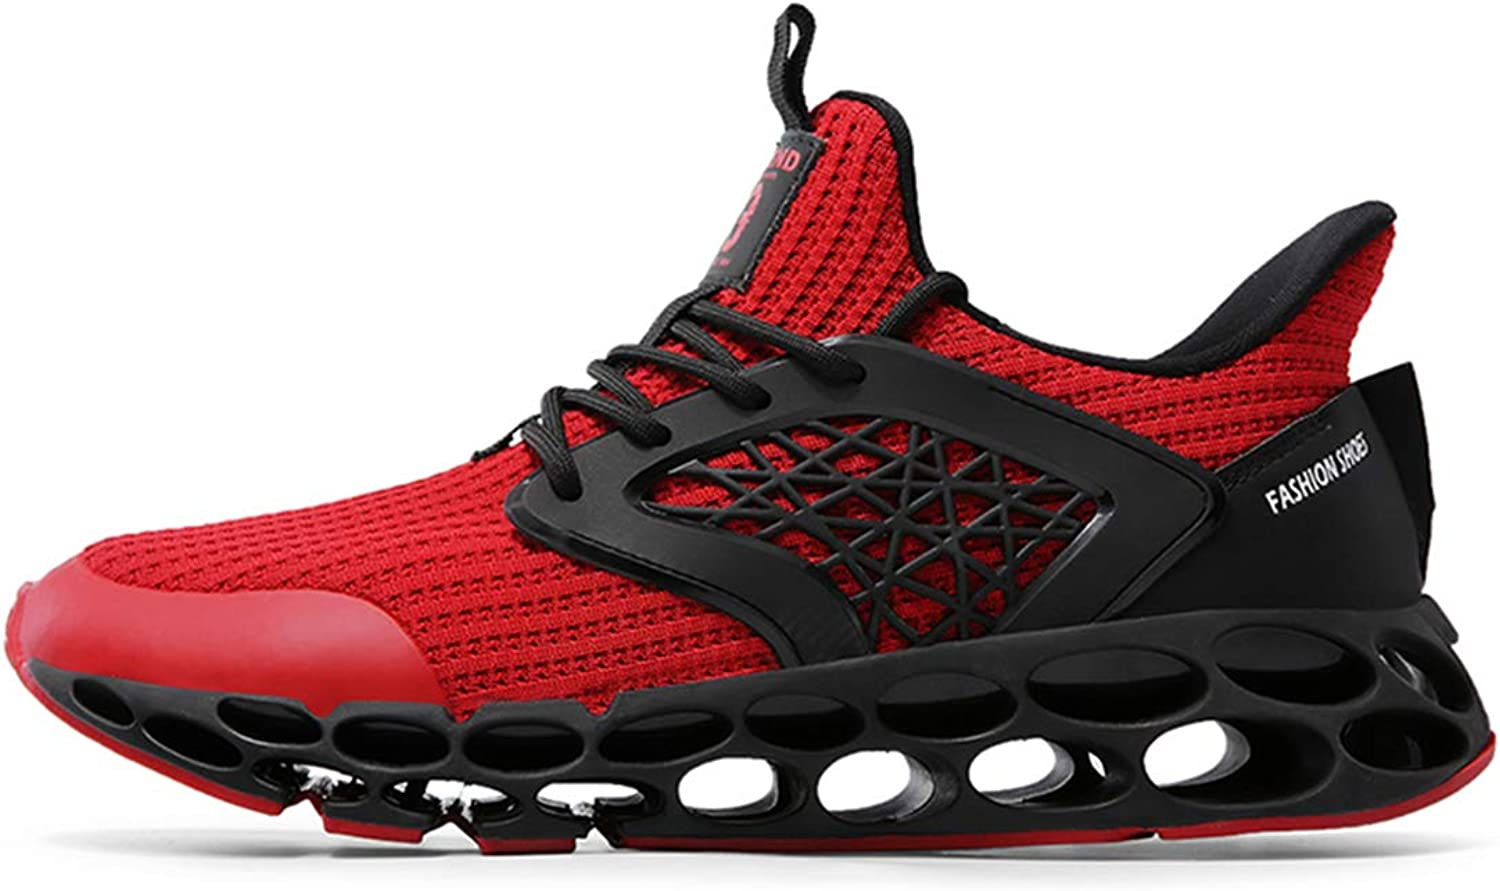 HDWY Men's Fashion Sports Hundred-Lap Running shoes Outdoor Leisure Non-Slip Fitness Running shoes